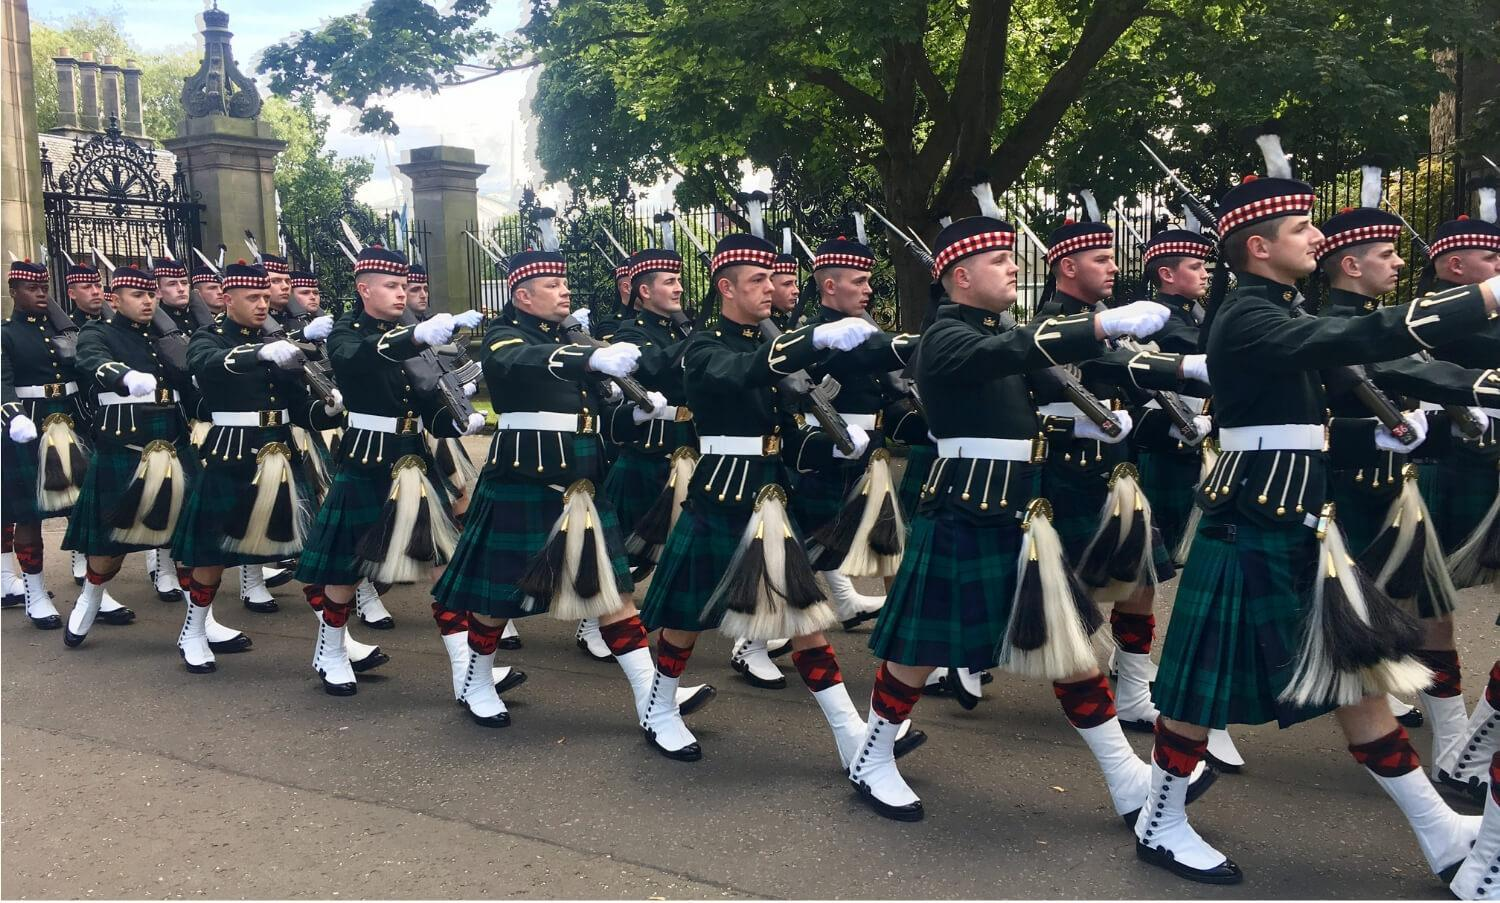 Troops marching at Royal Week, Palace of Holyroodhouse